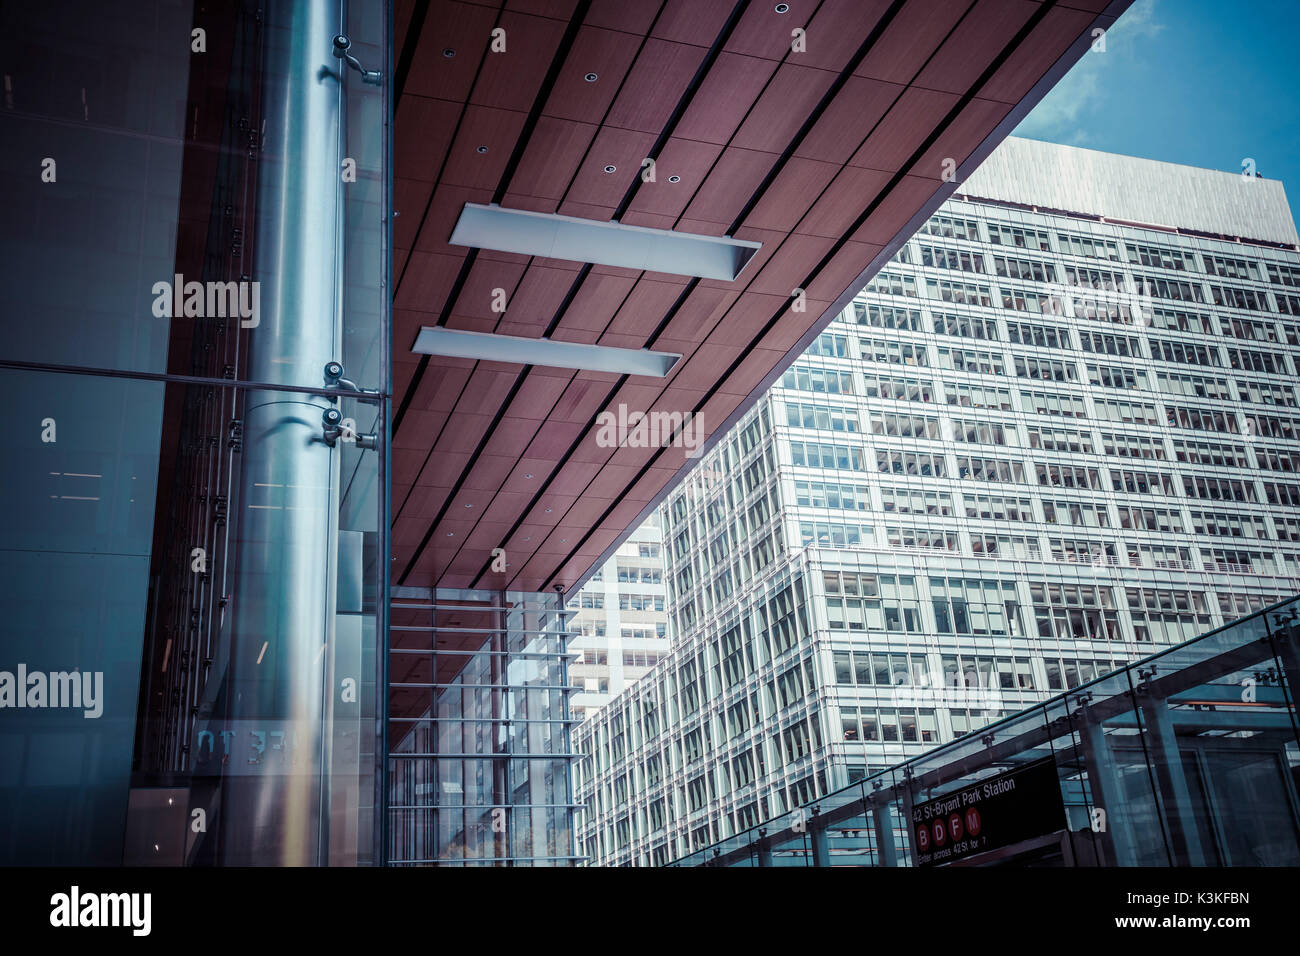 Architectur and skyscrapers, Bryant Park Station, Streetview, Manhatten, New York, USA - Stock Image